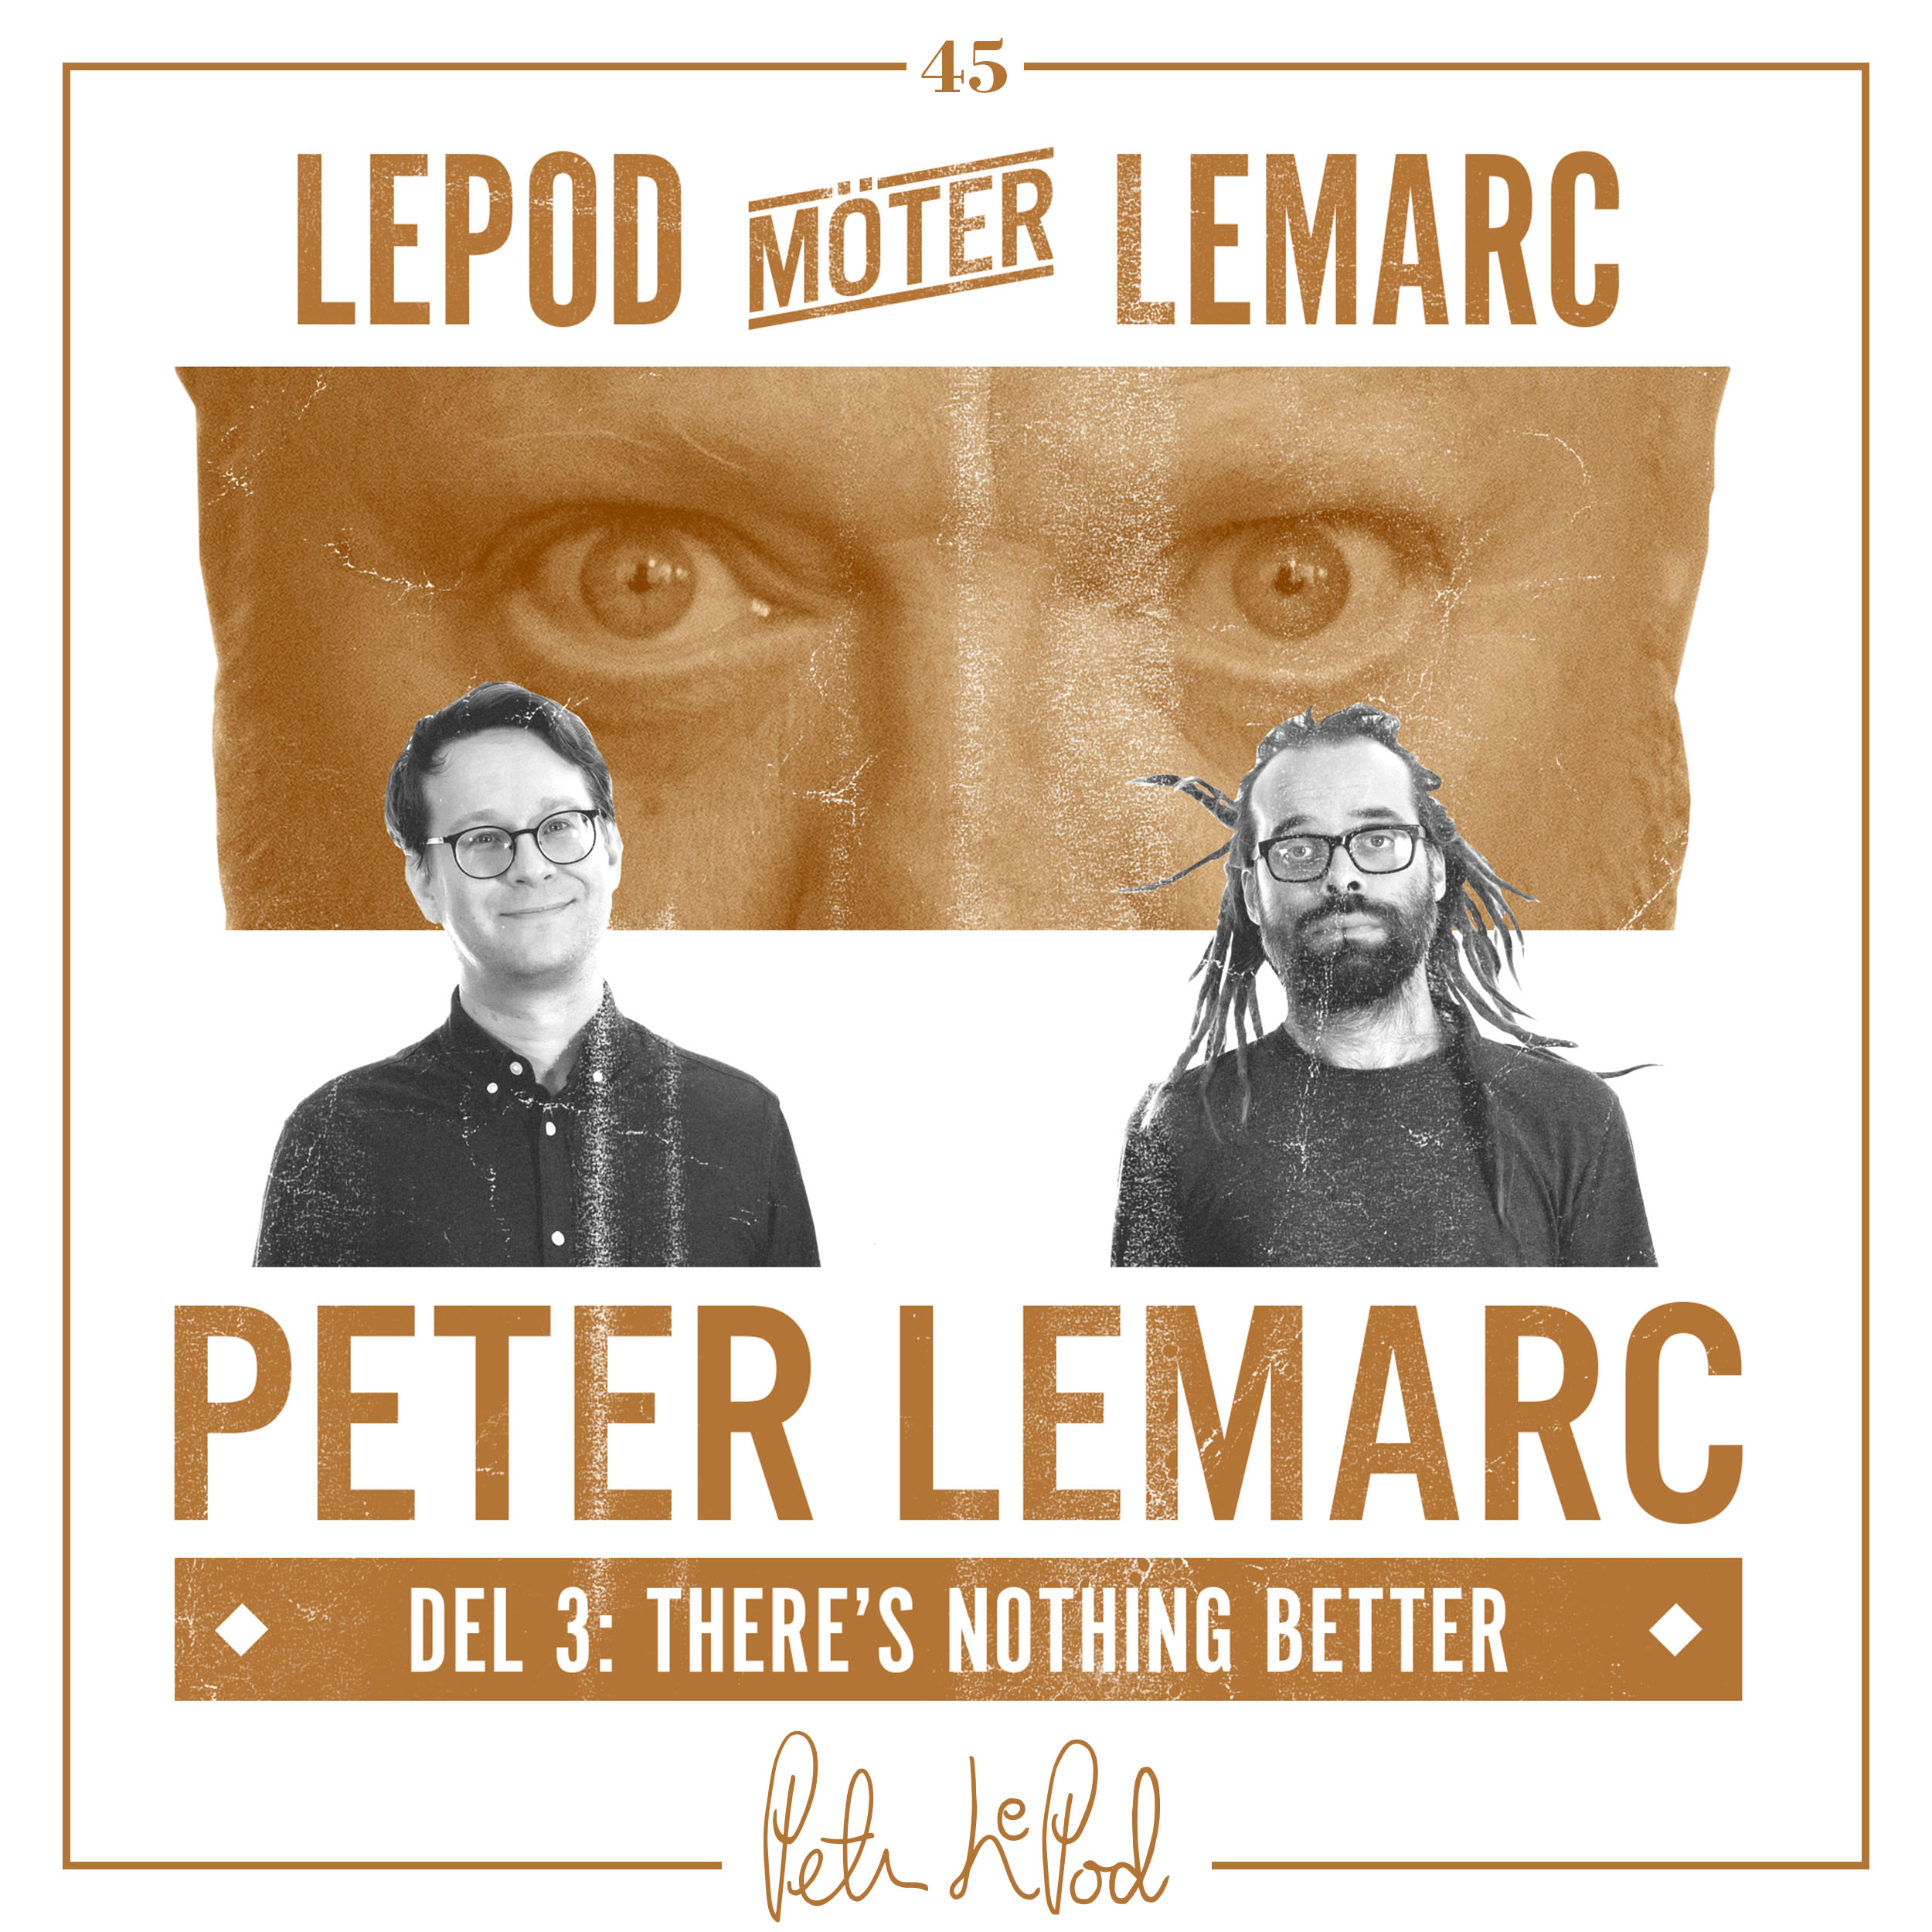 45. Peter LeMarc. Del 3: There's nothing better